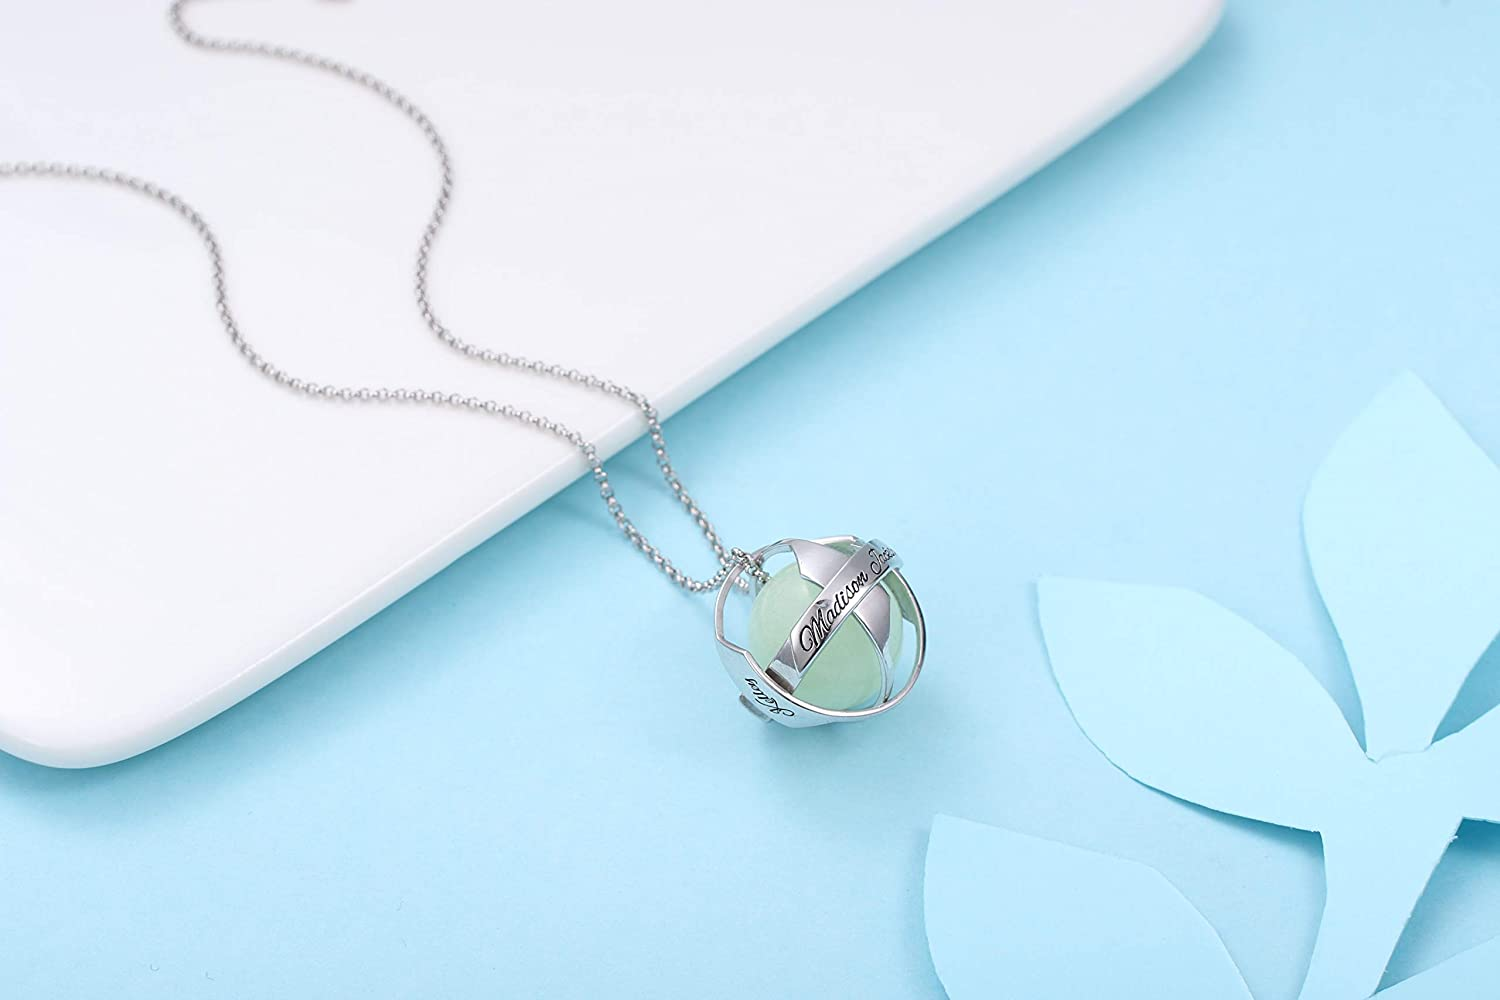 Getname Necklace Luminous Ring Pendant Necklace Fluorescent Necklace Glow in The Dark Pearl Necklace Engraved with Any Name